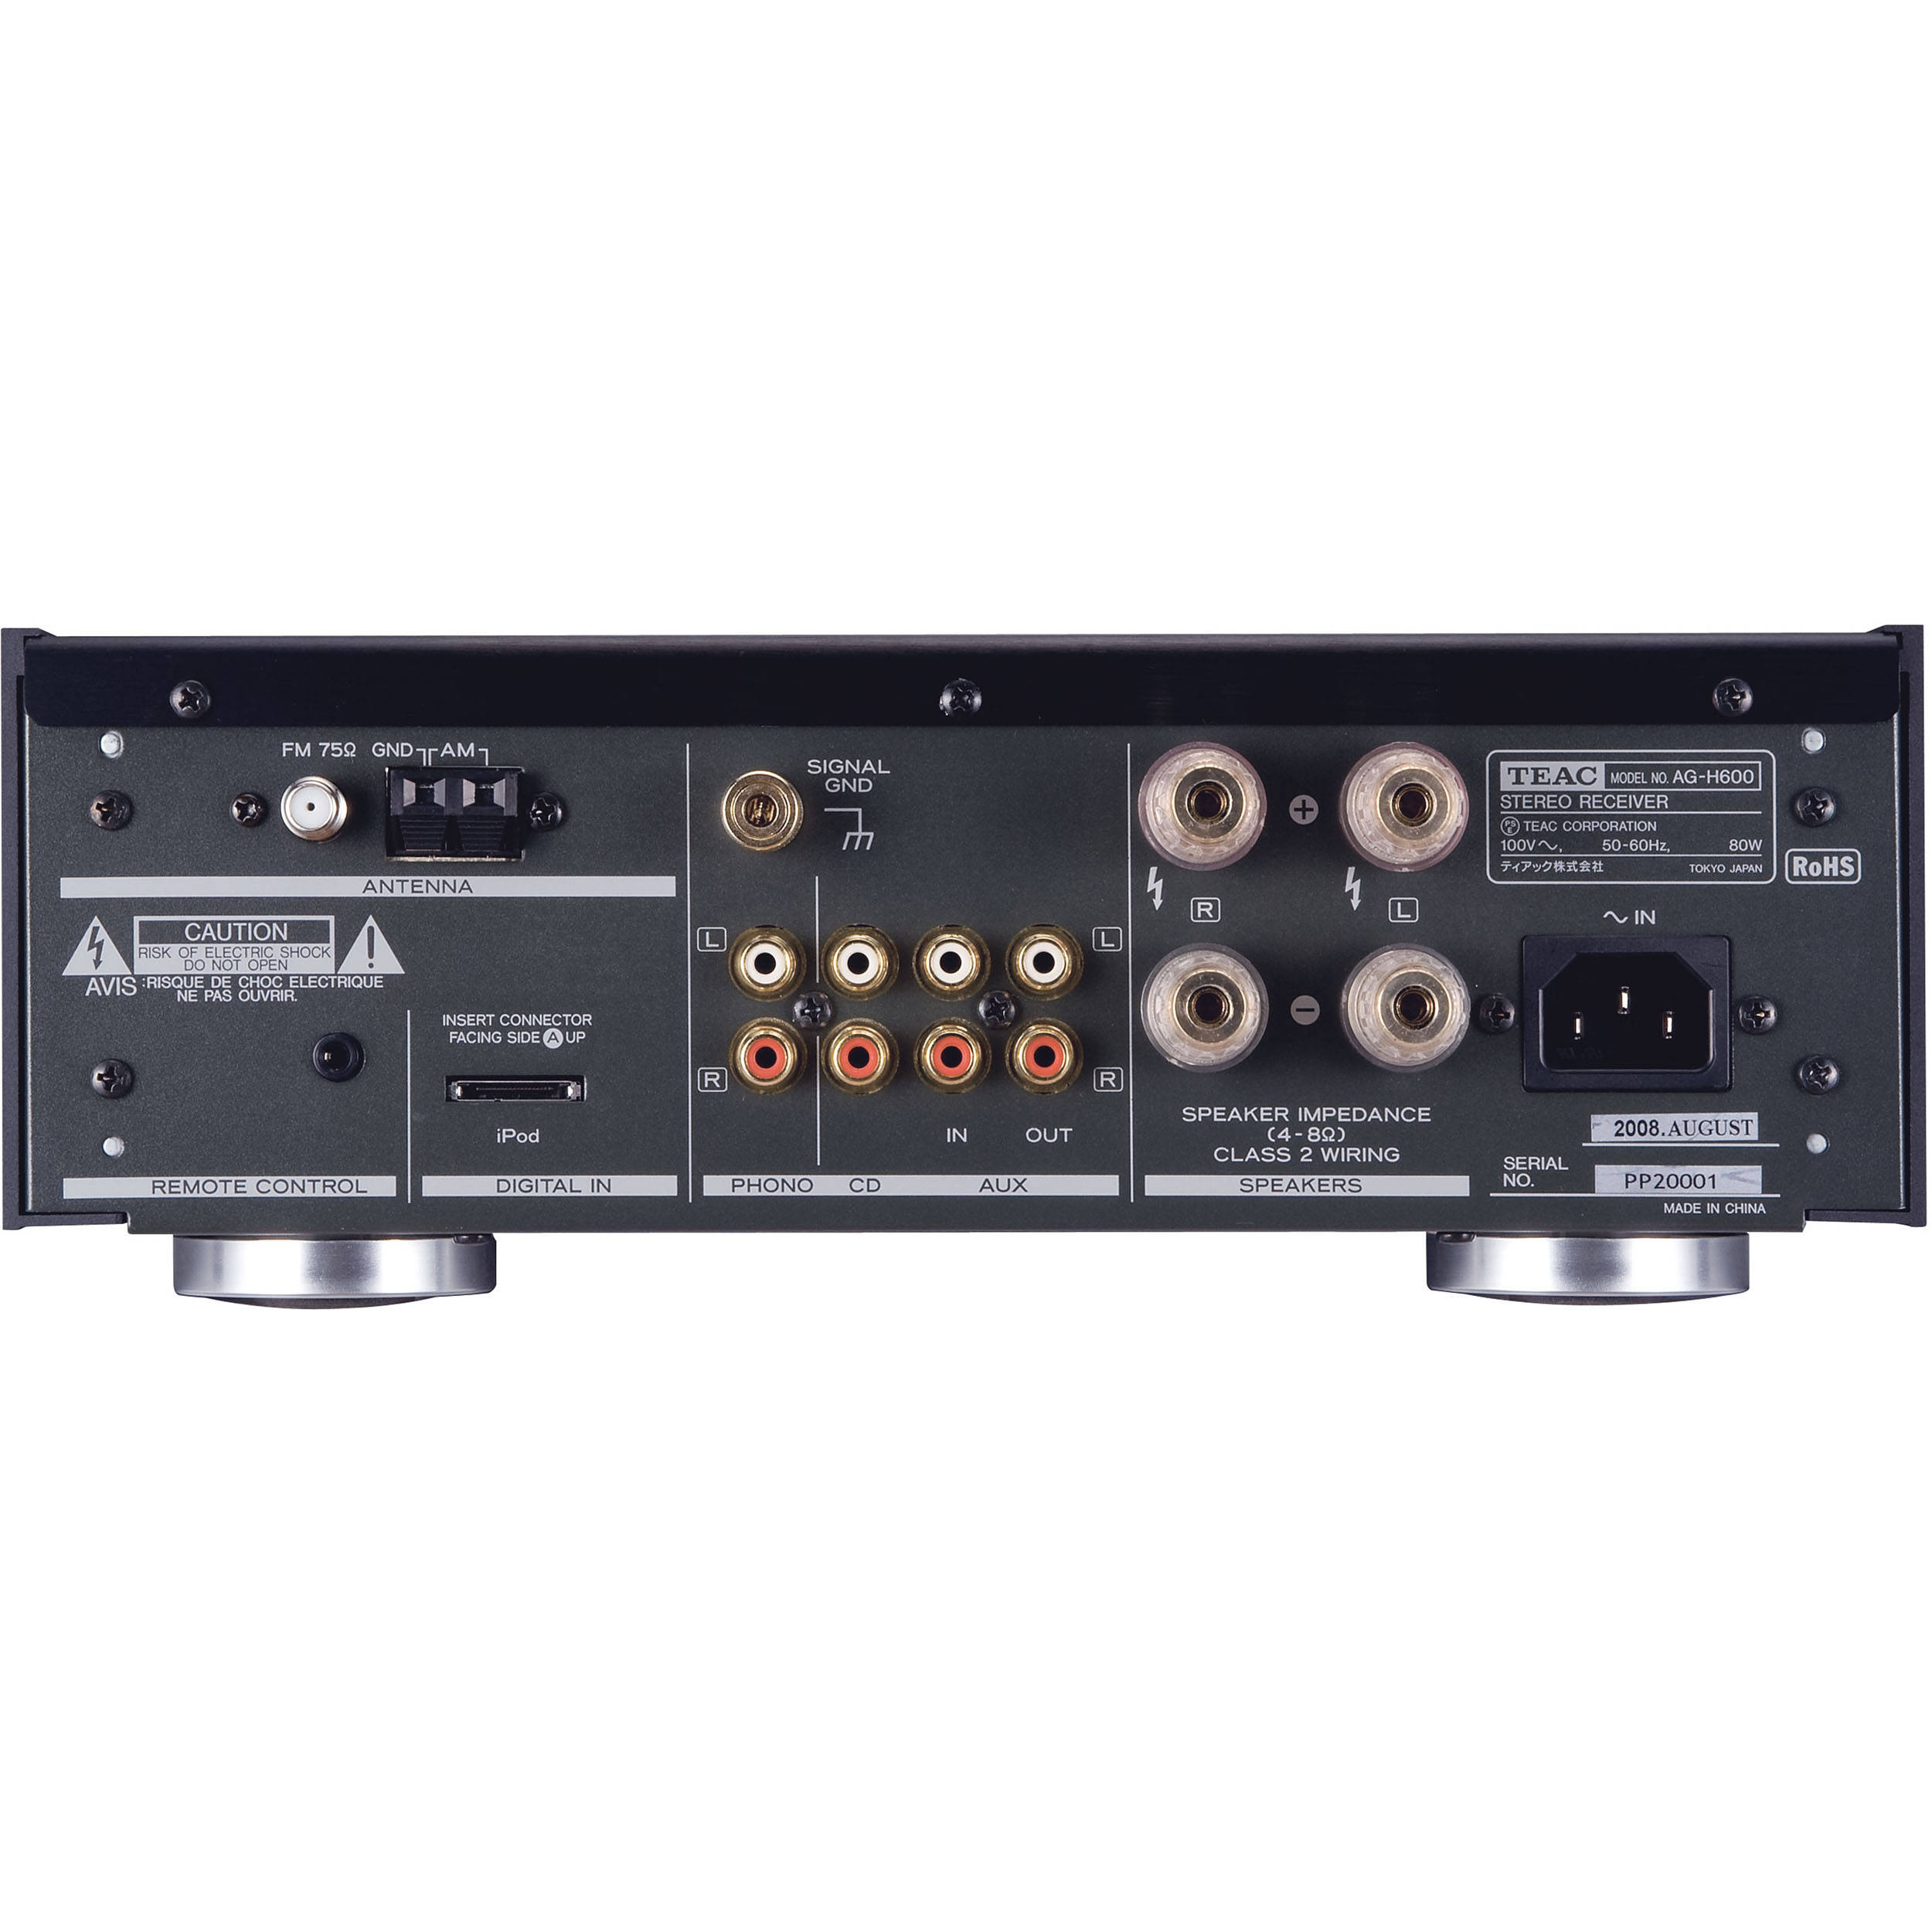 Teac AG-H600NT Stereo Receiver with Internet Radio AG-H600NT B&H